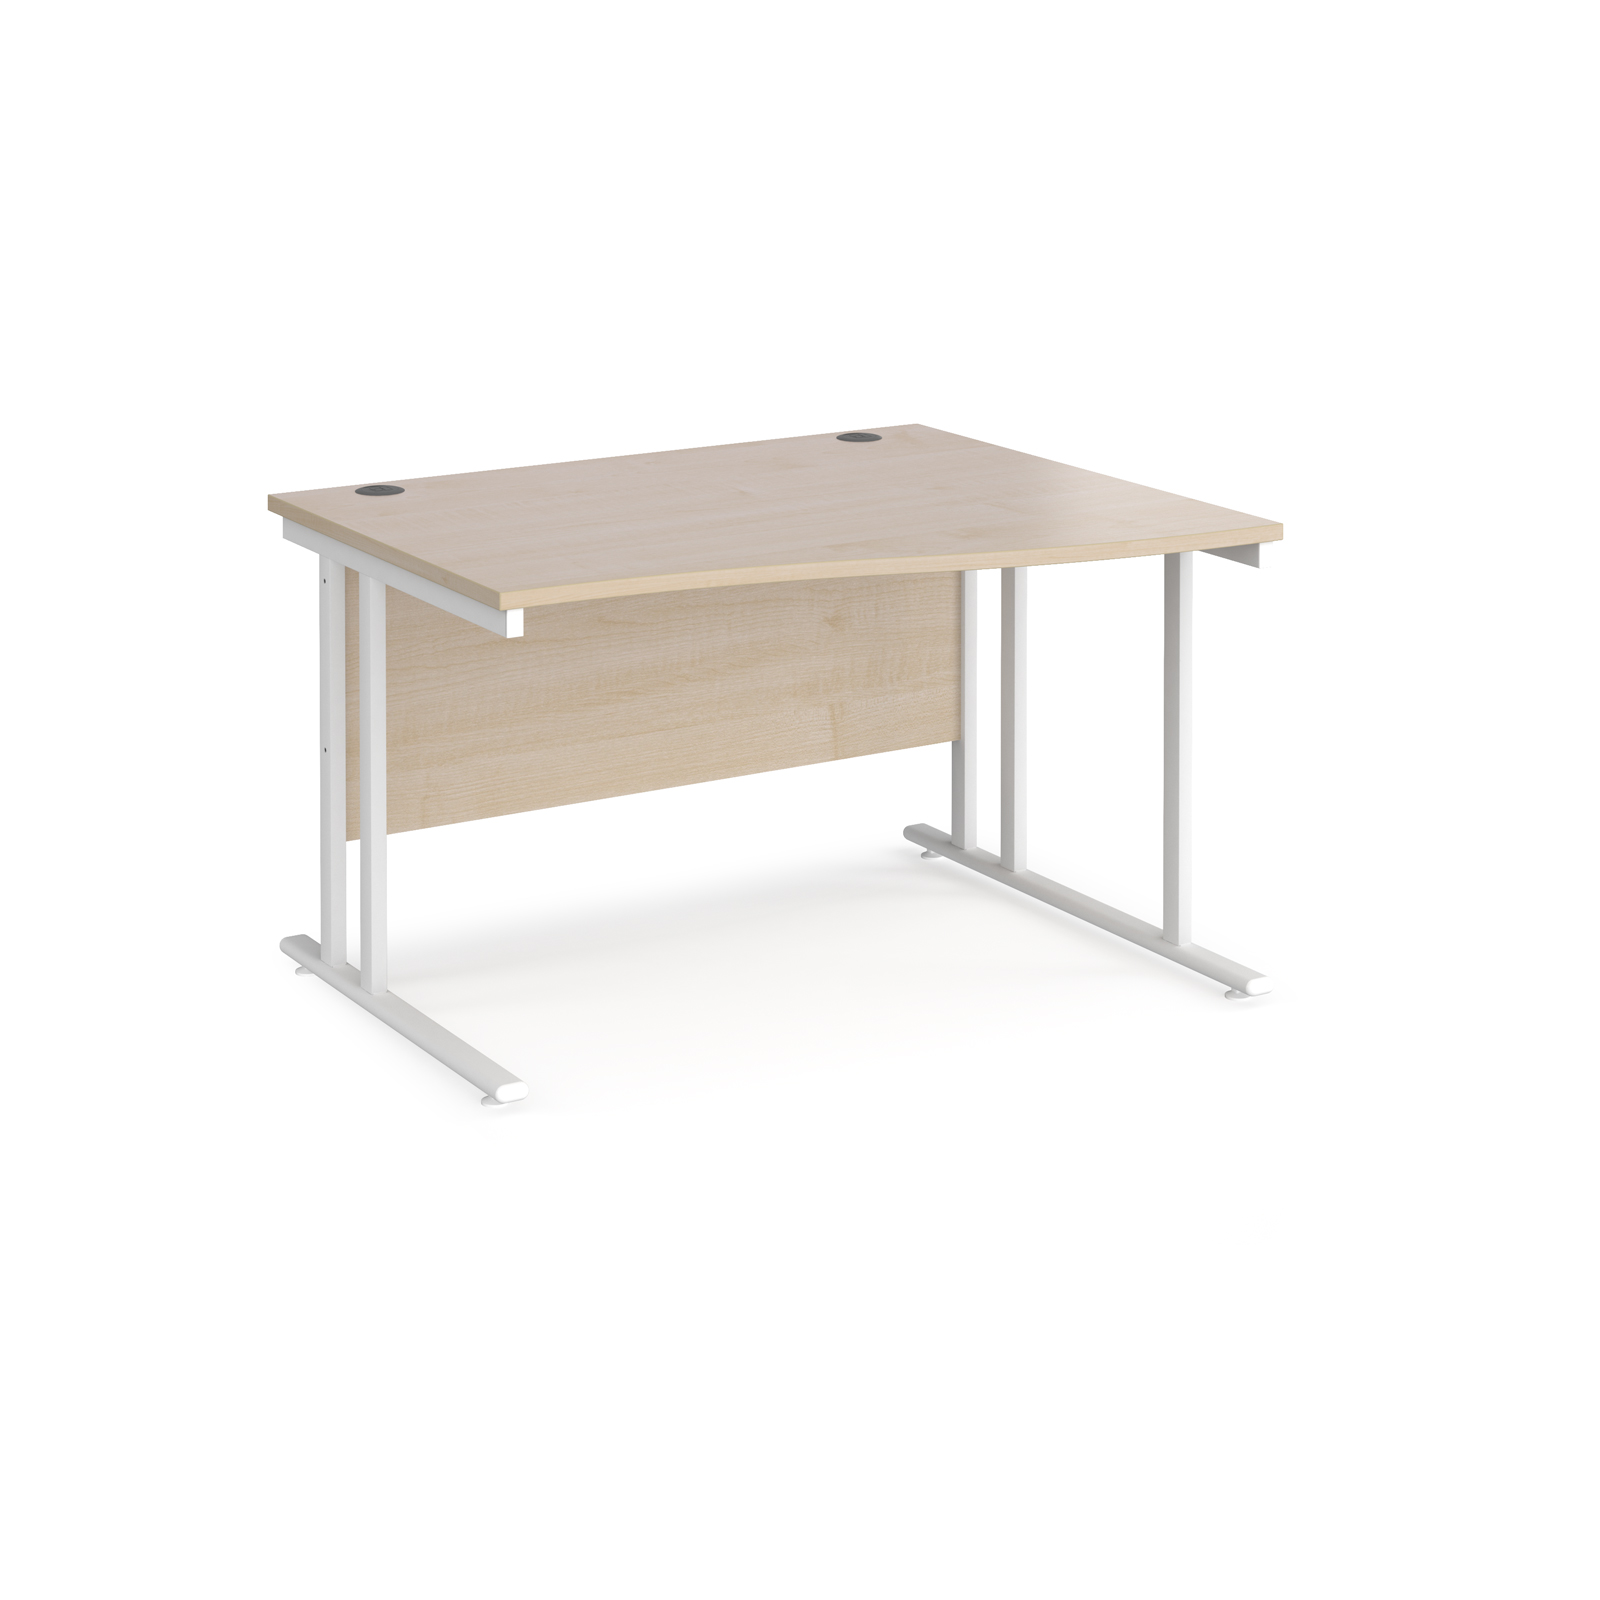 Right Handed Maestro 25 right hand wave desk 1200mm wide - white cantilever leg frame, maple top